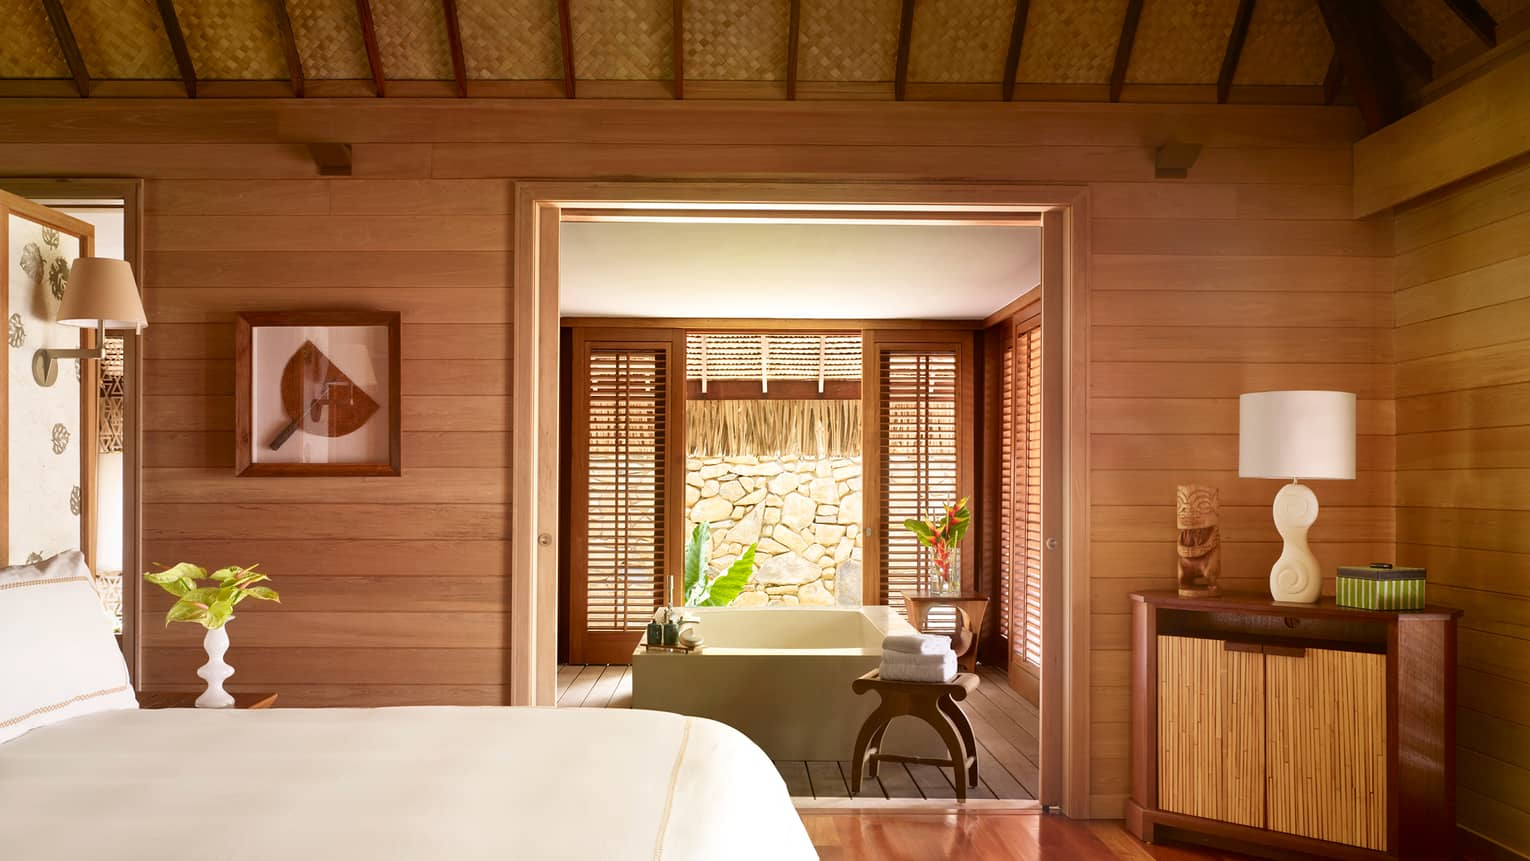 Fenua beachfront villa bedroom with white bed, wood decor, looking into room with square spa tub, patio door